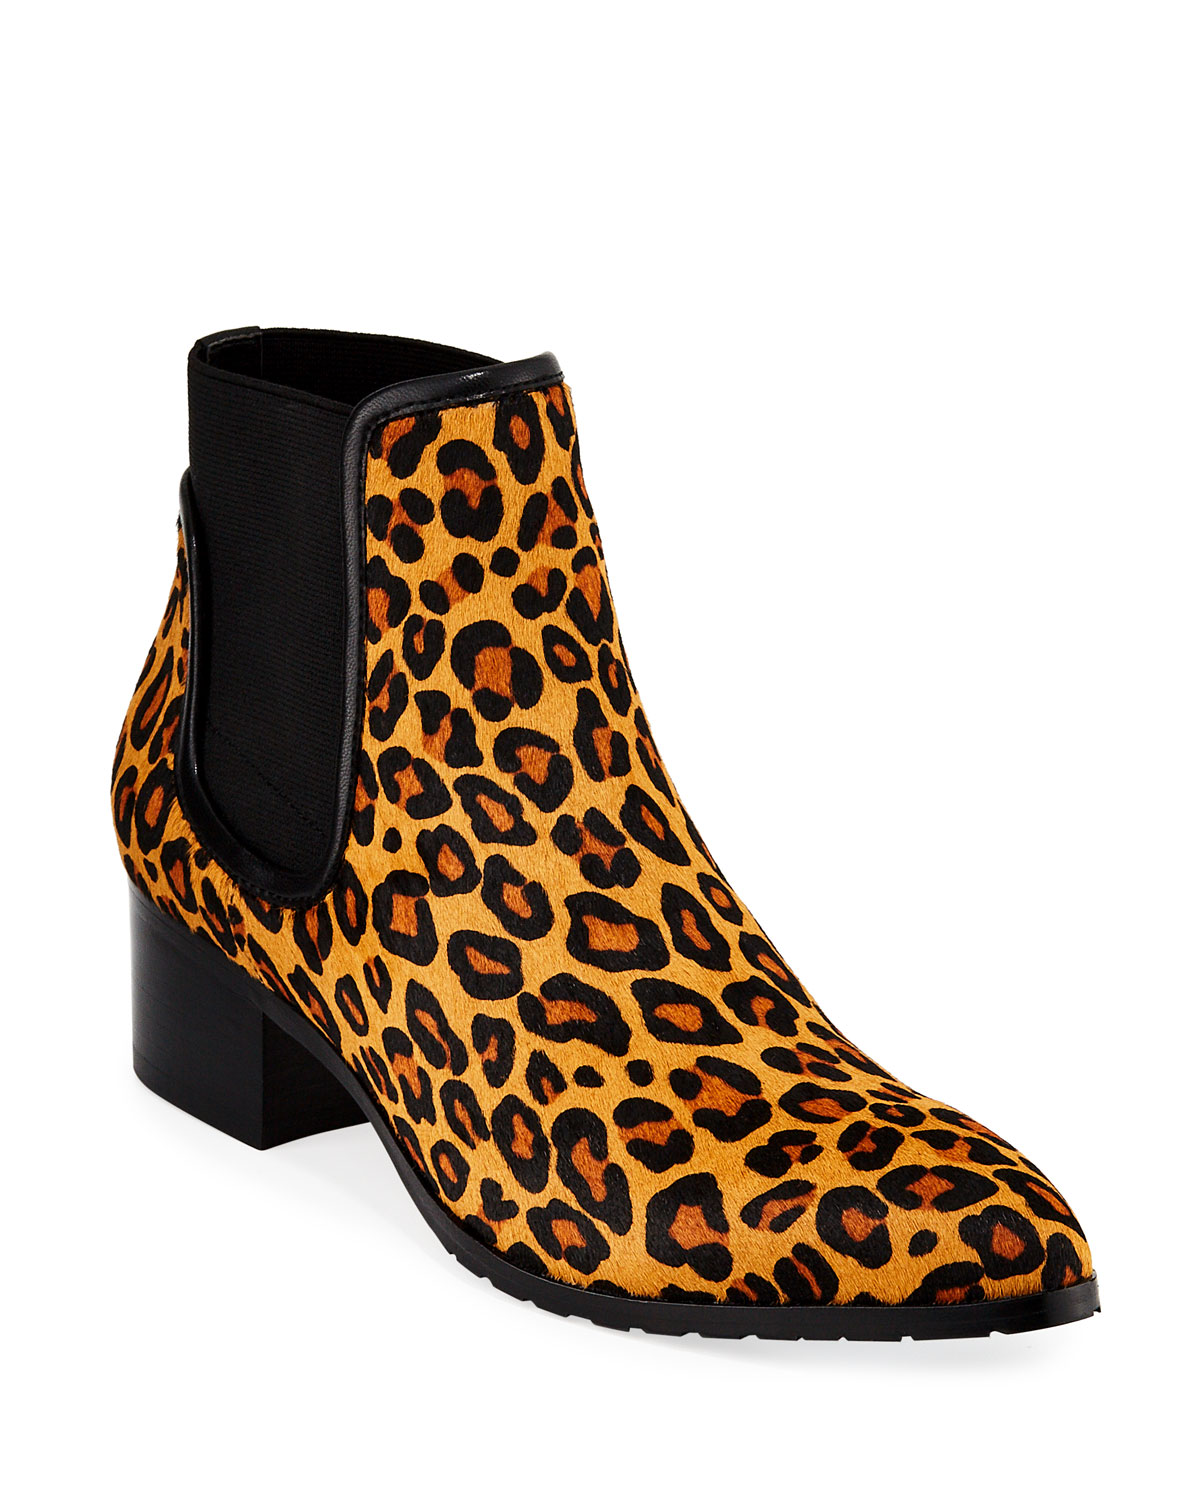 Dyla Leopard-Print Calf Hair Booties